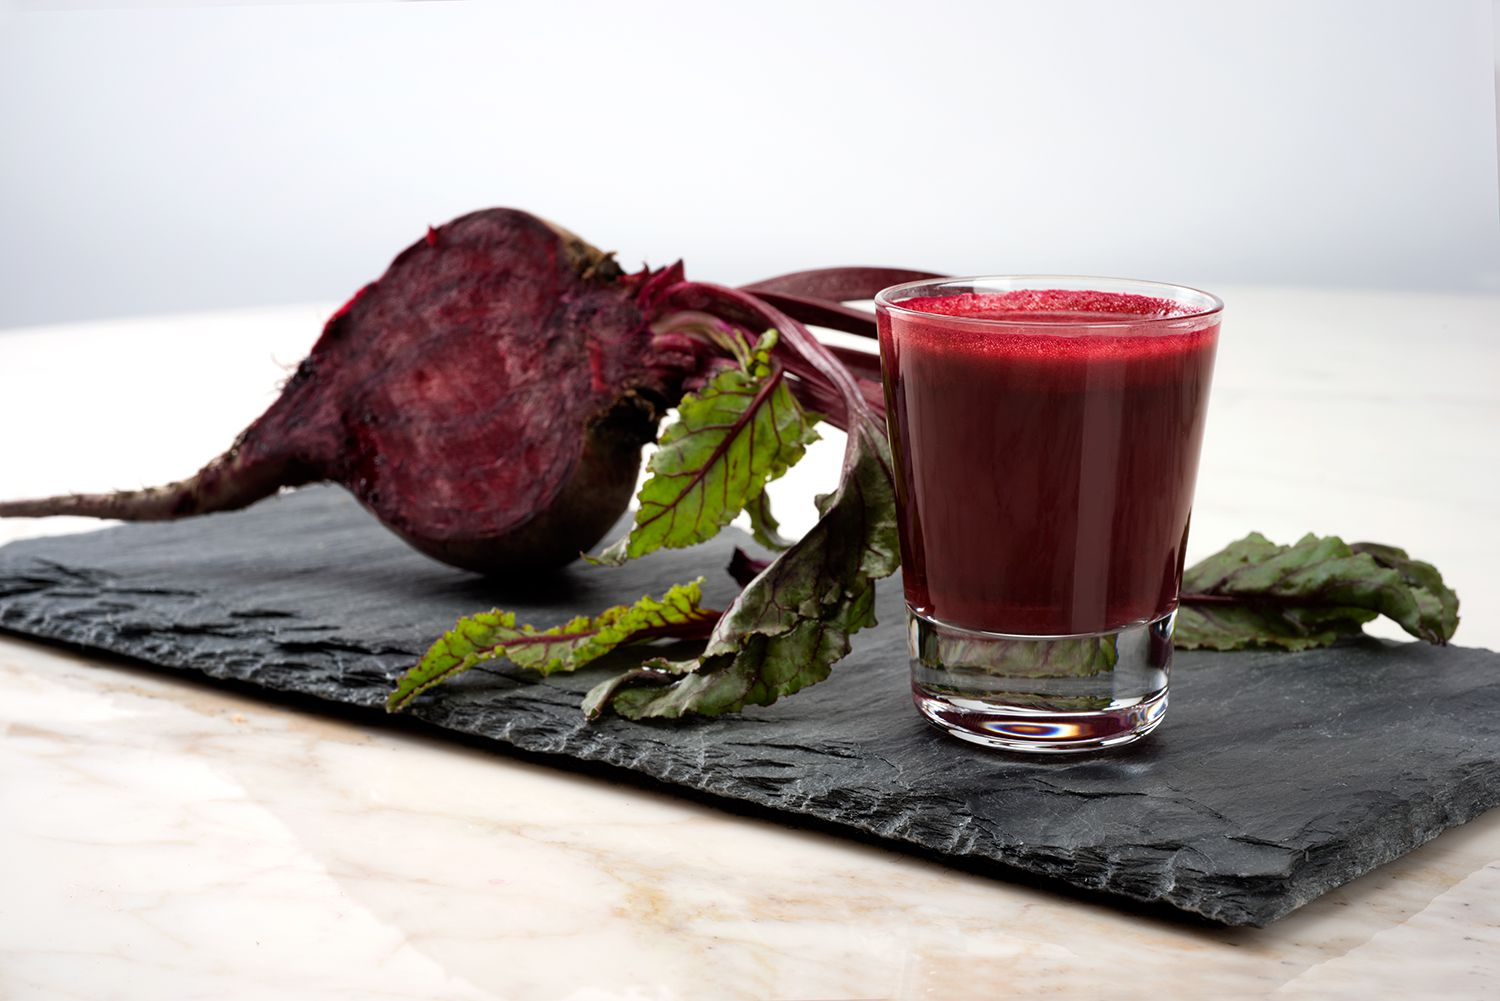 A glass of beet juice and a raw beet on a piece of slate